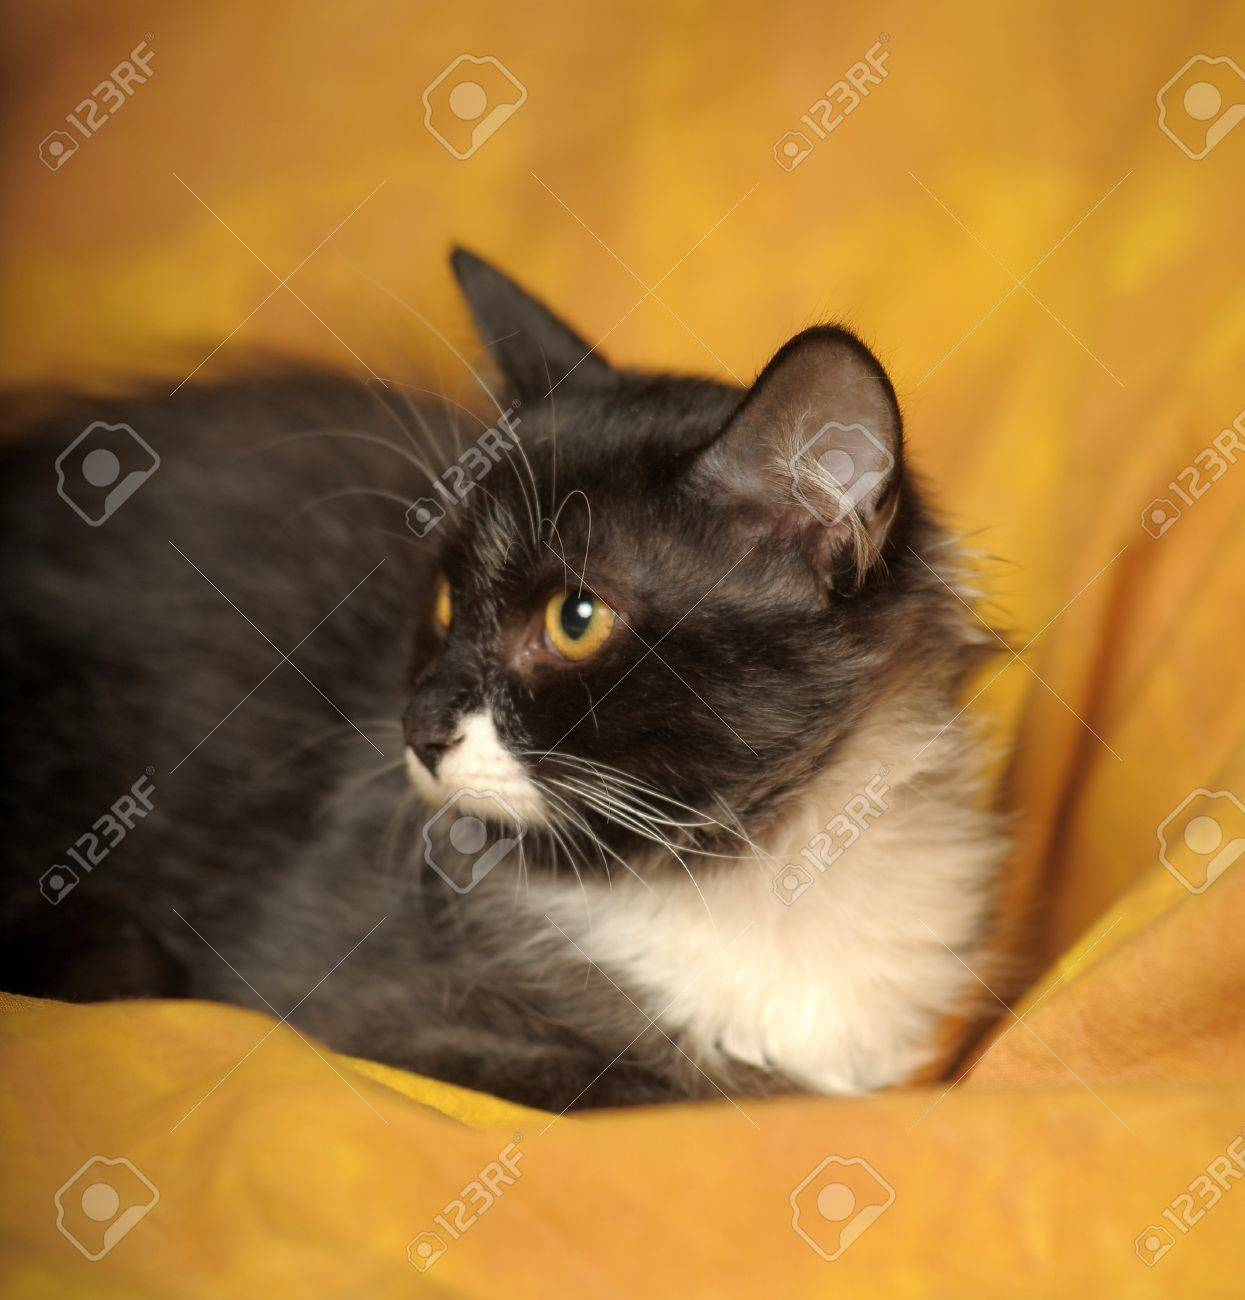 Black with white a kitten on a yellow background Stock Photo - 11960660